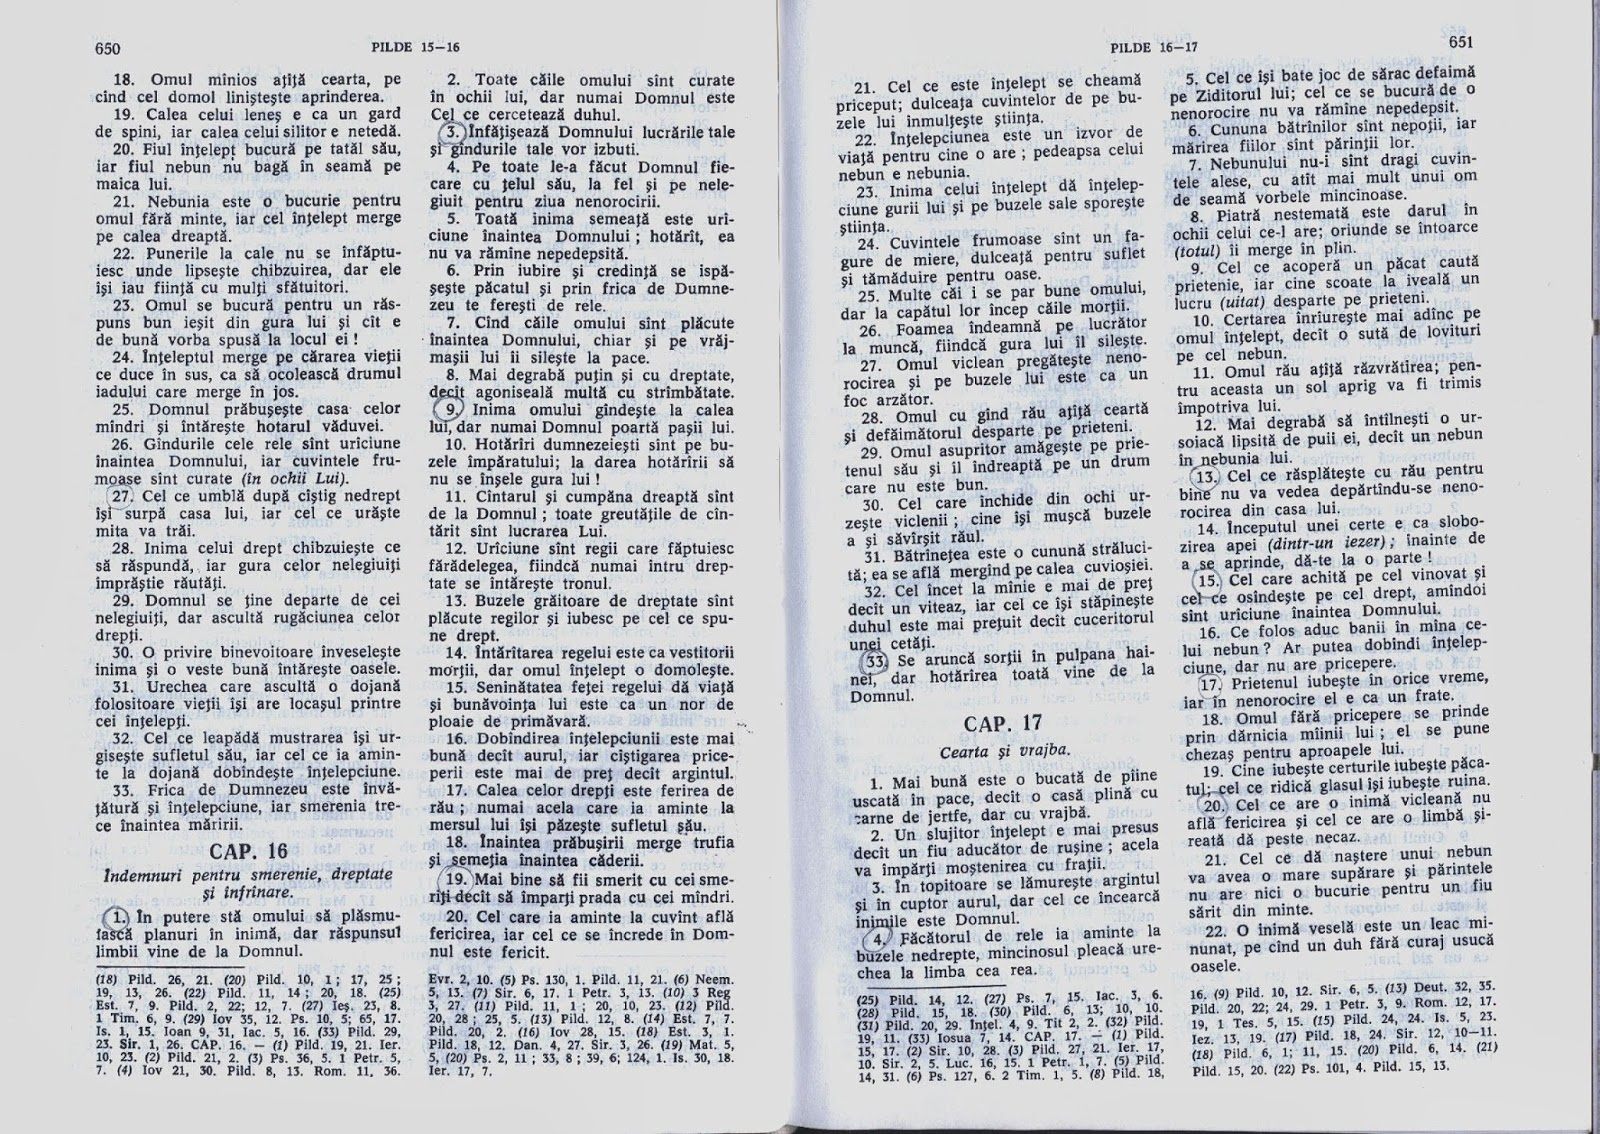 proverbs of solomon holy bible The god of the bible (study of the father, son, and holy spirit  bible study questions on the book of proverbs  list some of the main events in the life of solomon.